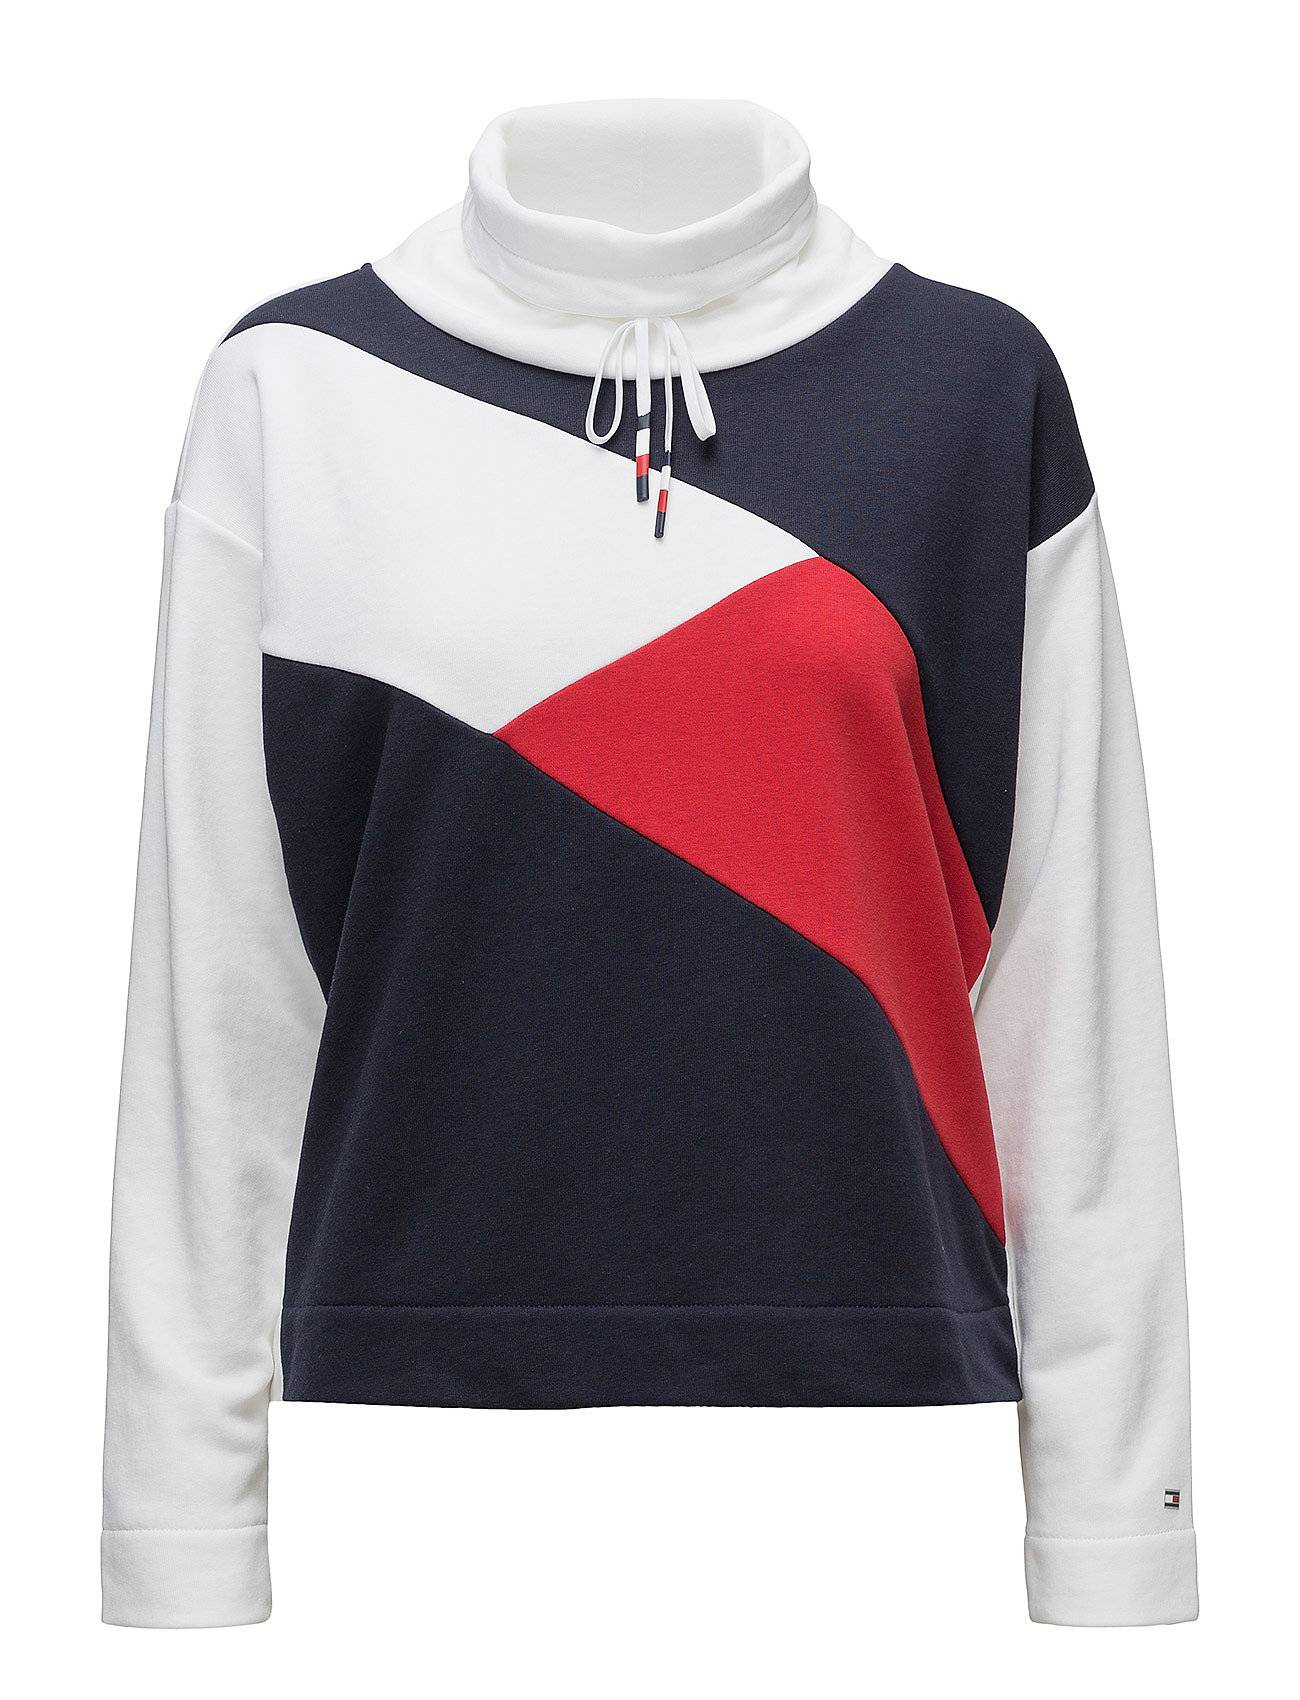 Tommy Hilfiger Th Ath Elba Colour Block Sweatshirt Ls